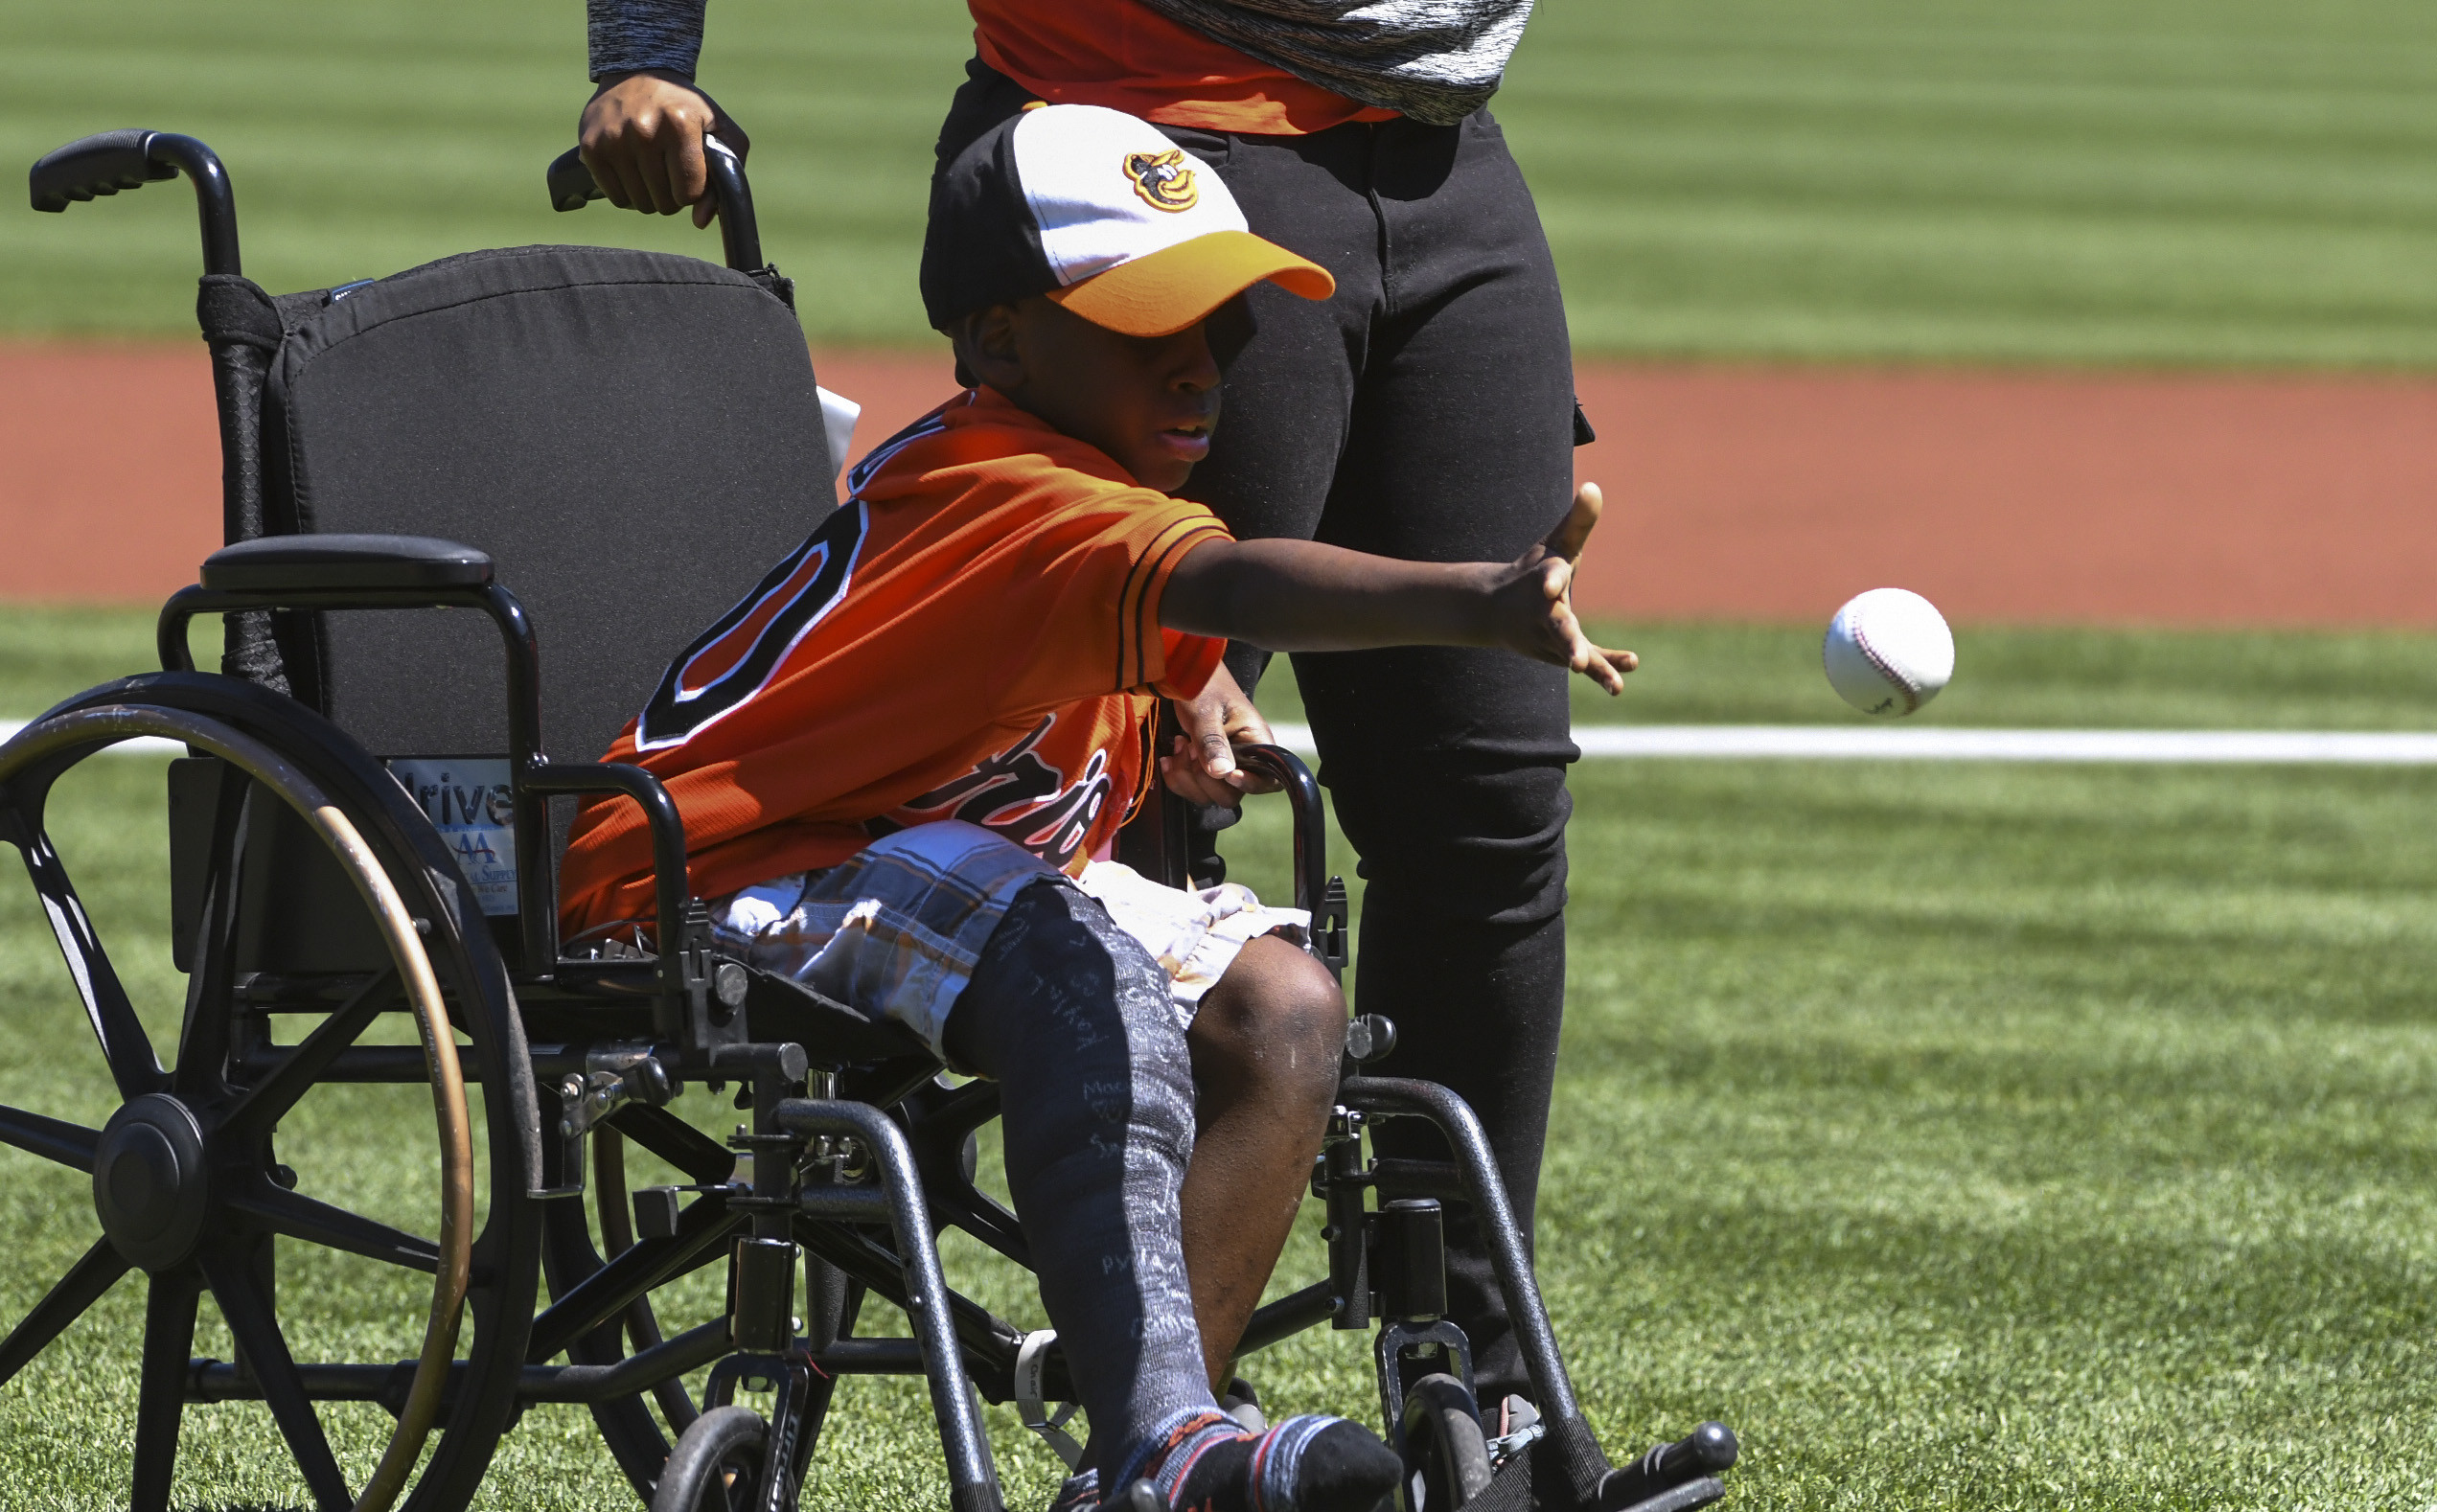 Mo Gaba, Baltimore Orioles' Newest Hall of Famer, Dies at 14